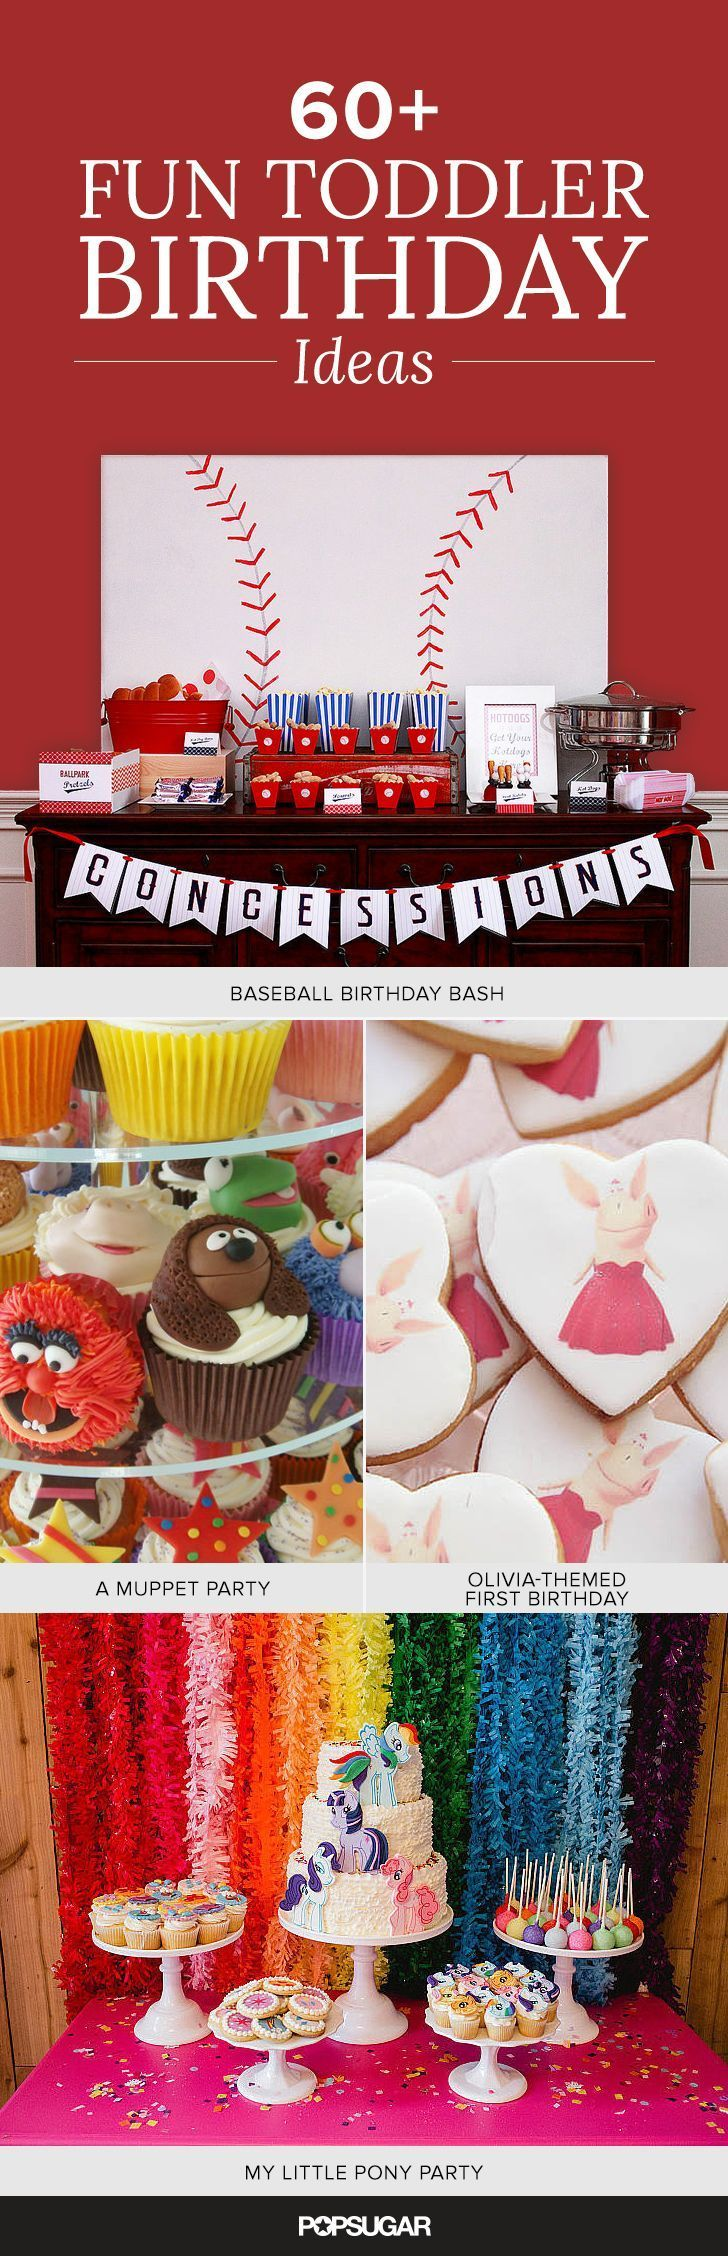 68 Fun Ways to Fete Your Terrific Toddler Clever Birthdays and